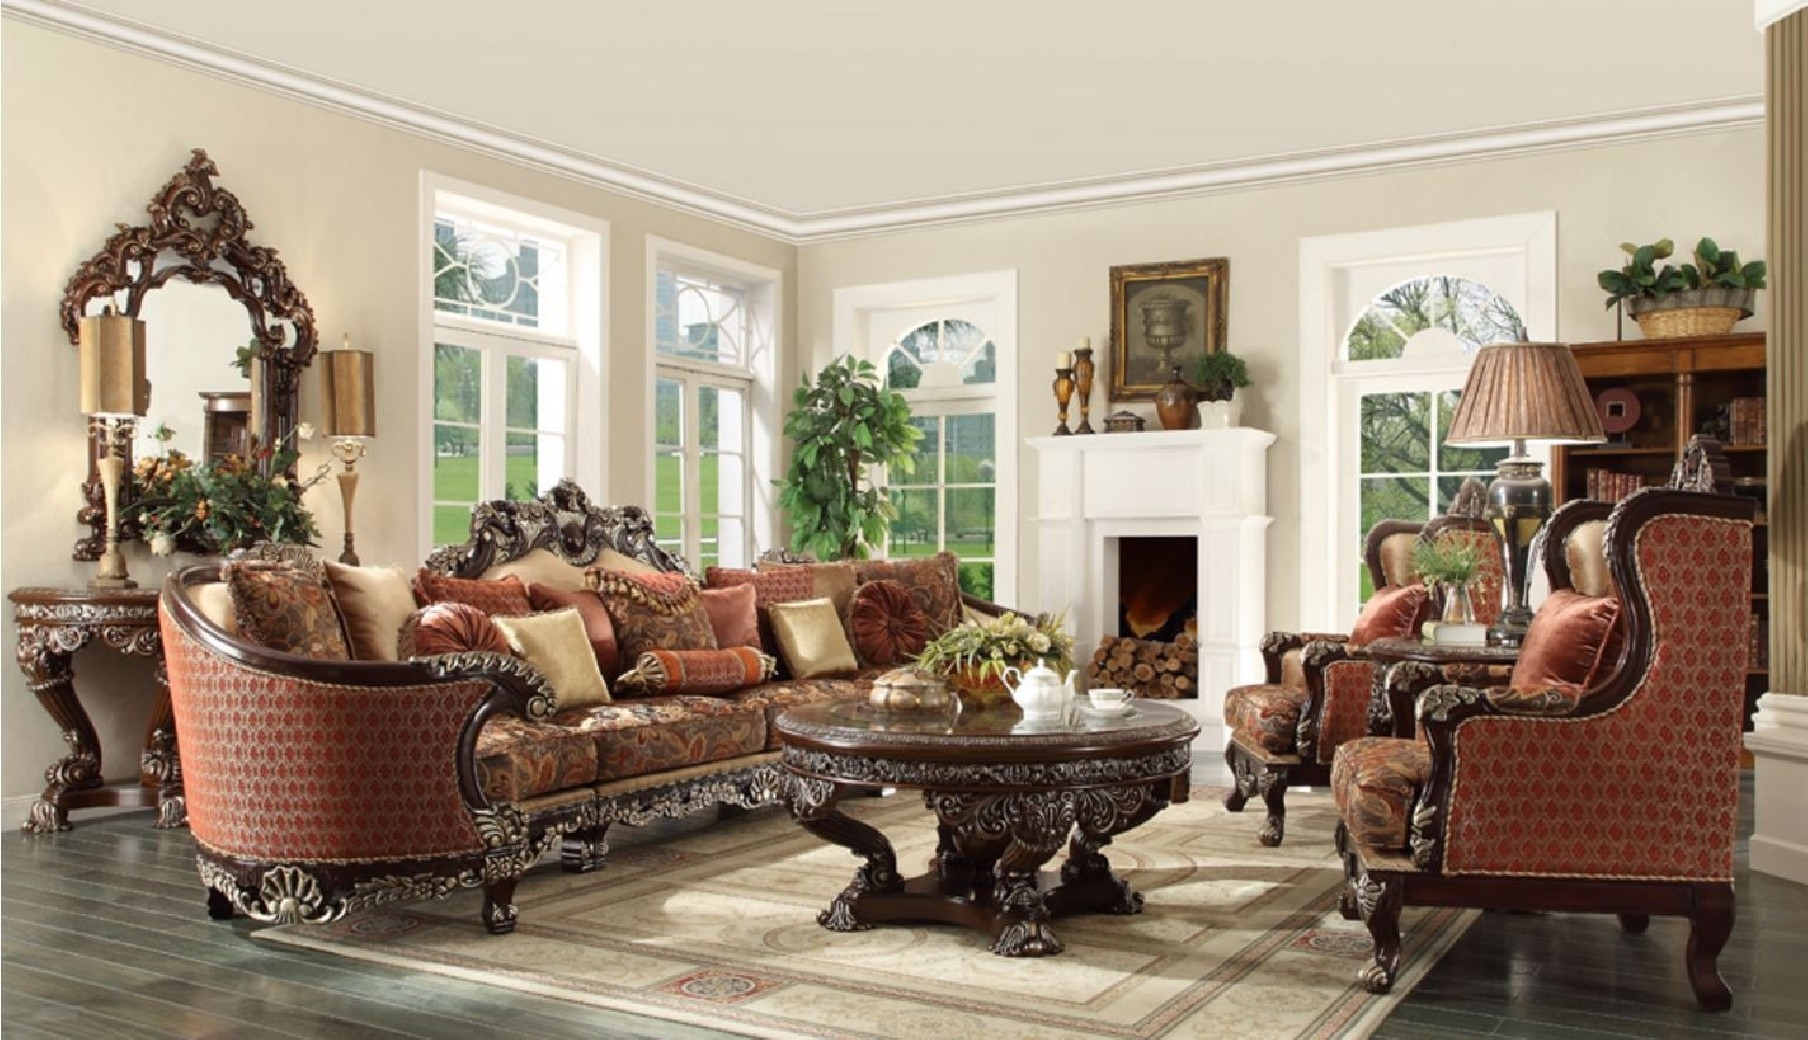 HD 111 Homey Design upholstered Sectional Victorian, European & Classic  design Sofa Set